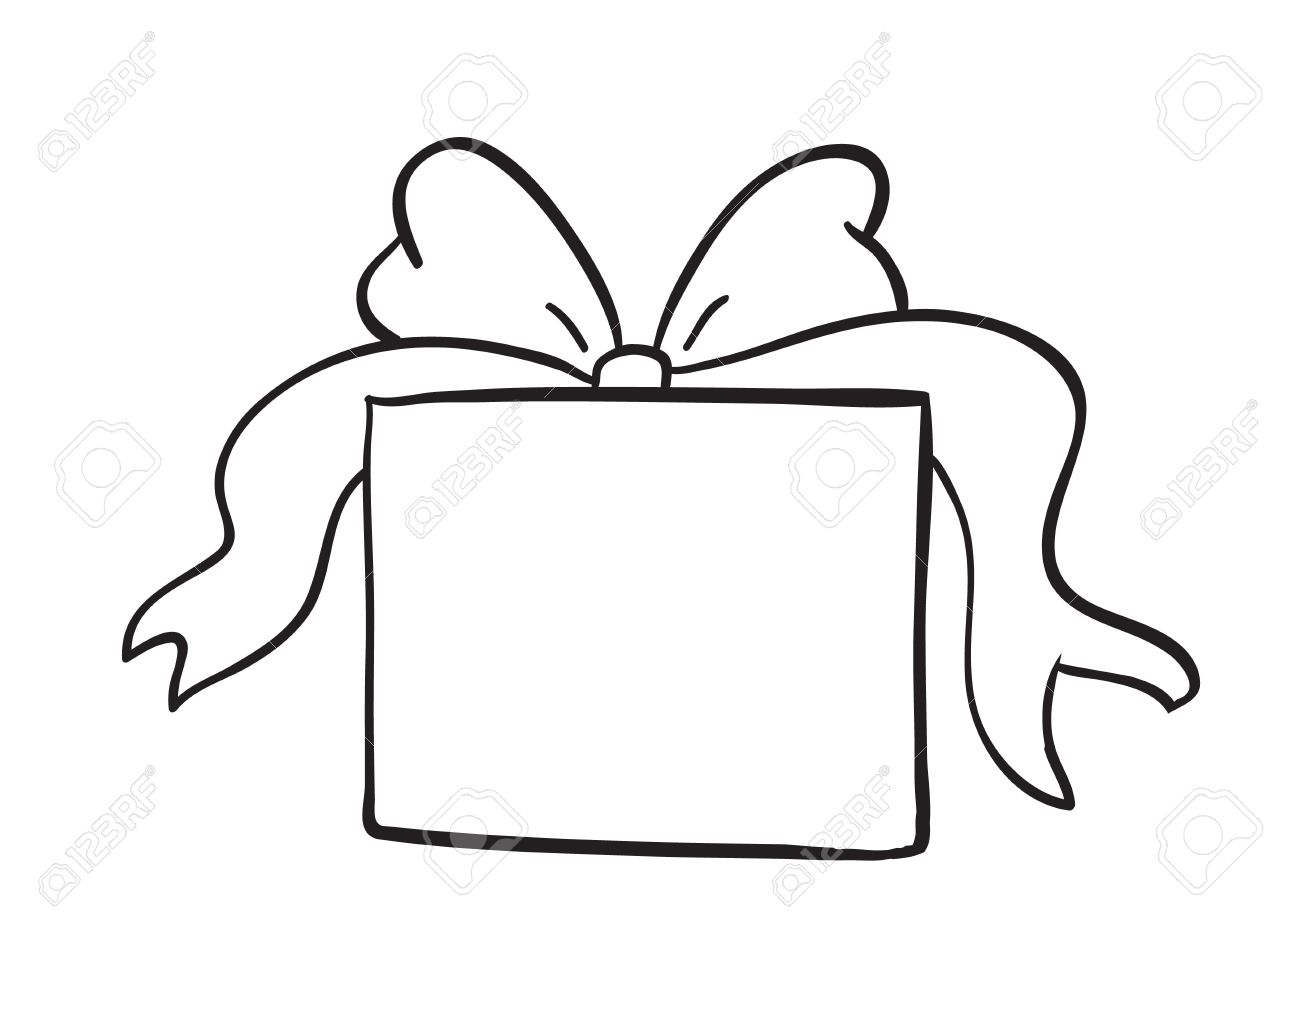 Present clipart outline picture library Present Clipart Outline   Free download best Present Clipart ... picture library